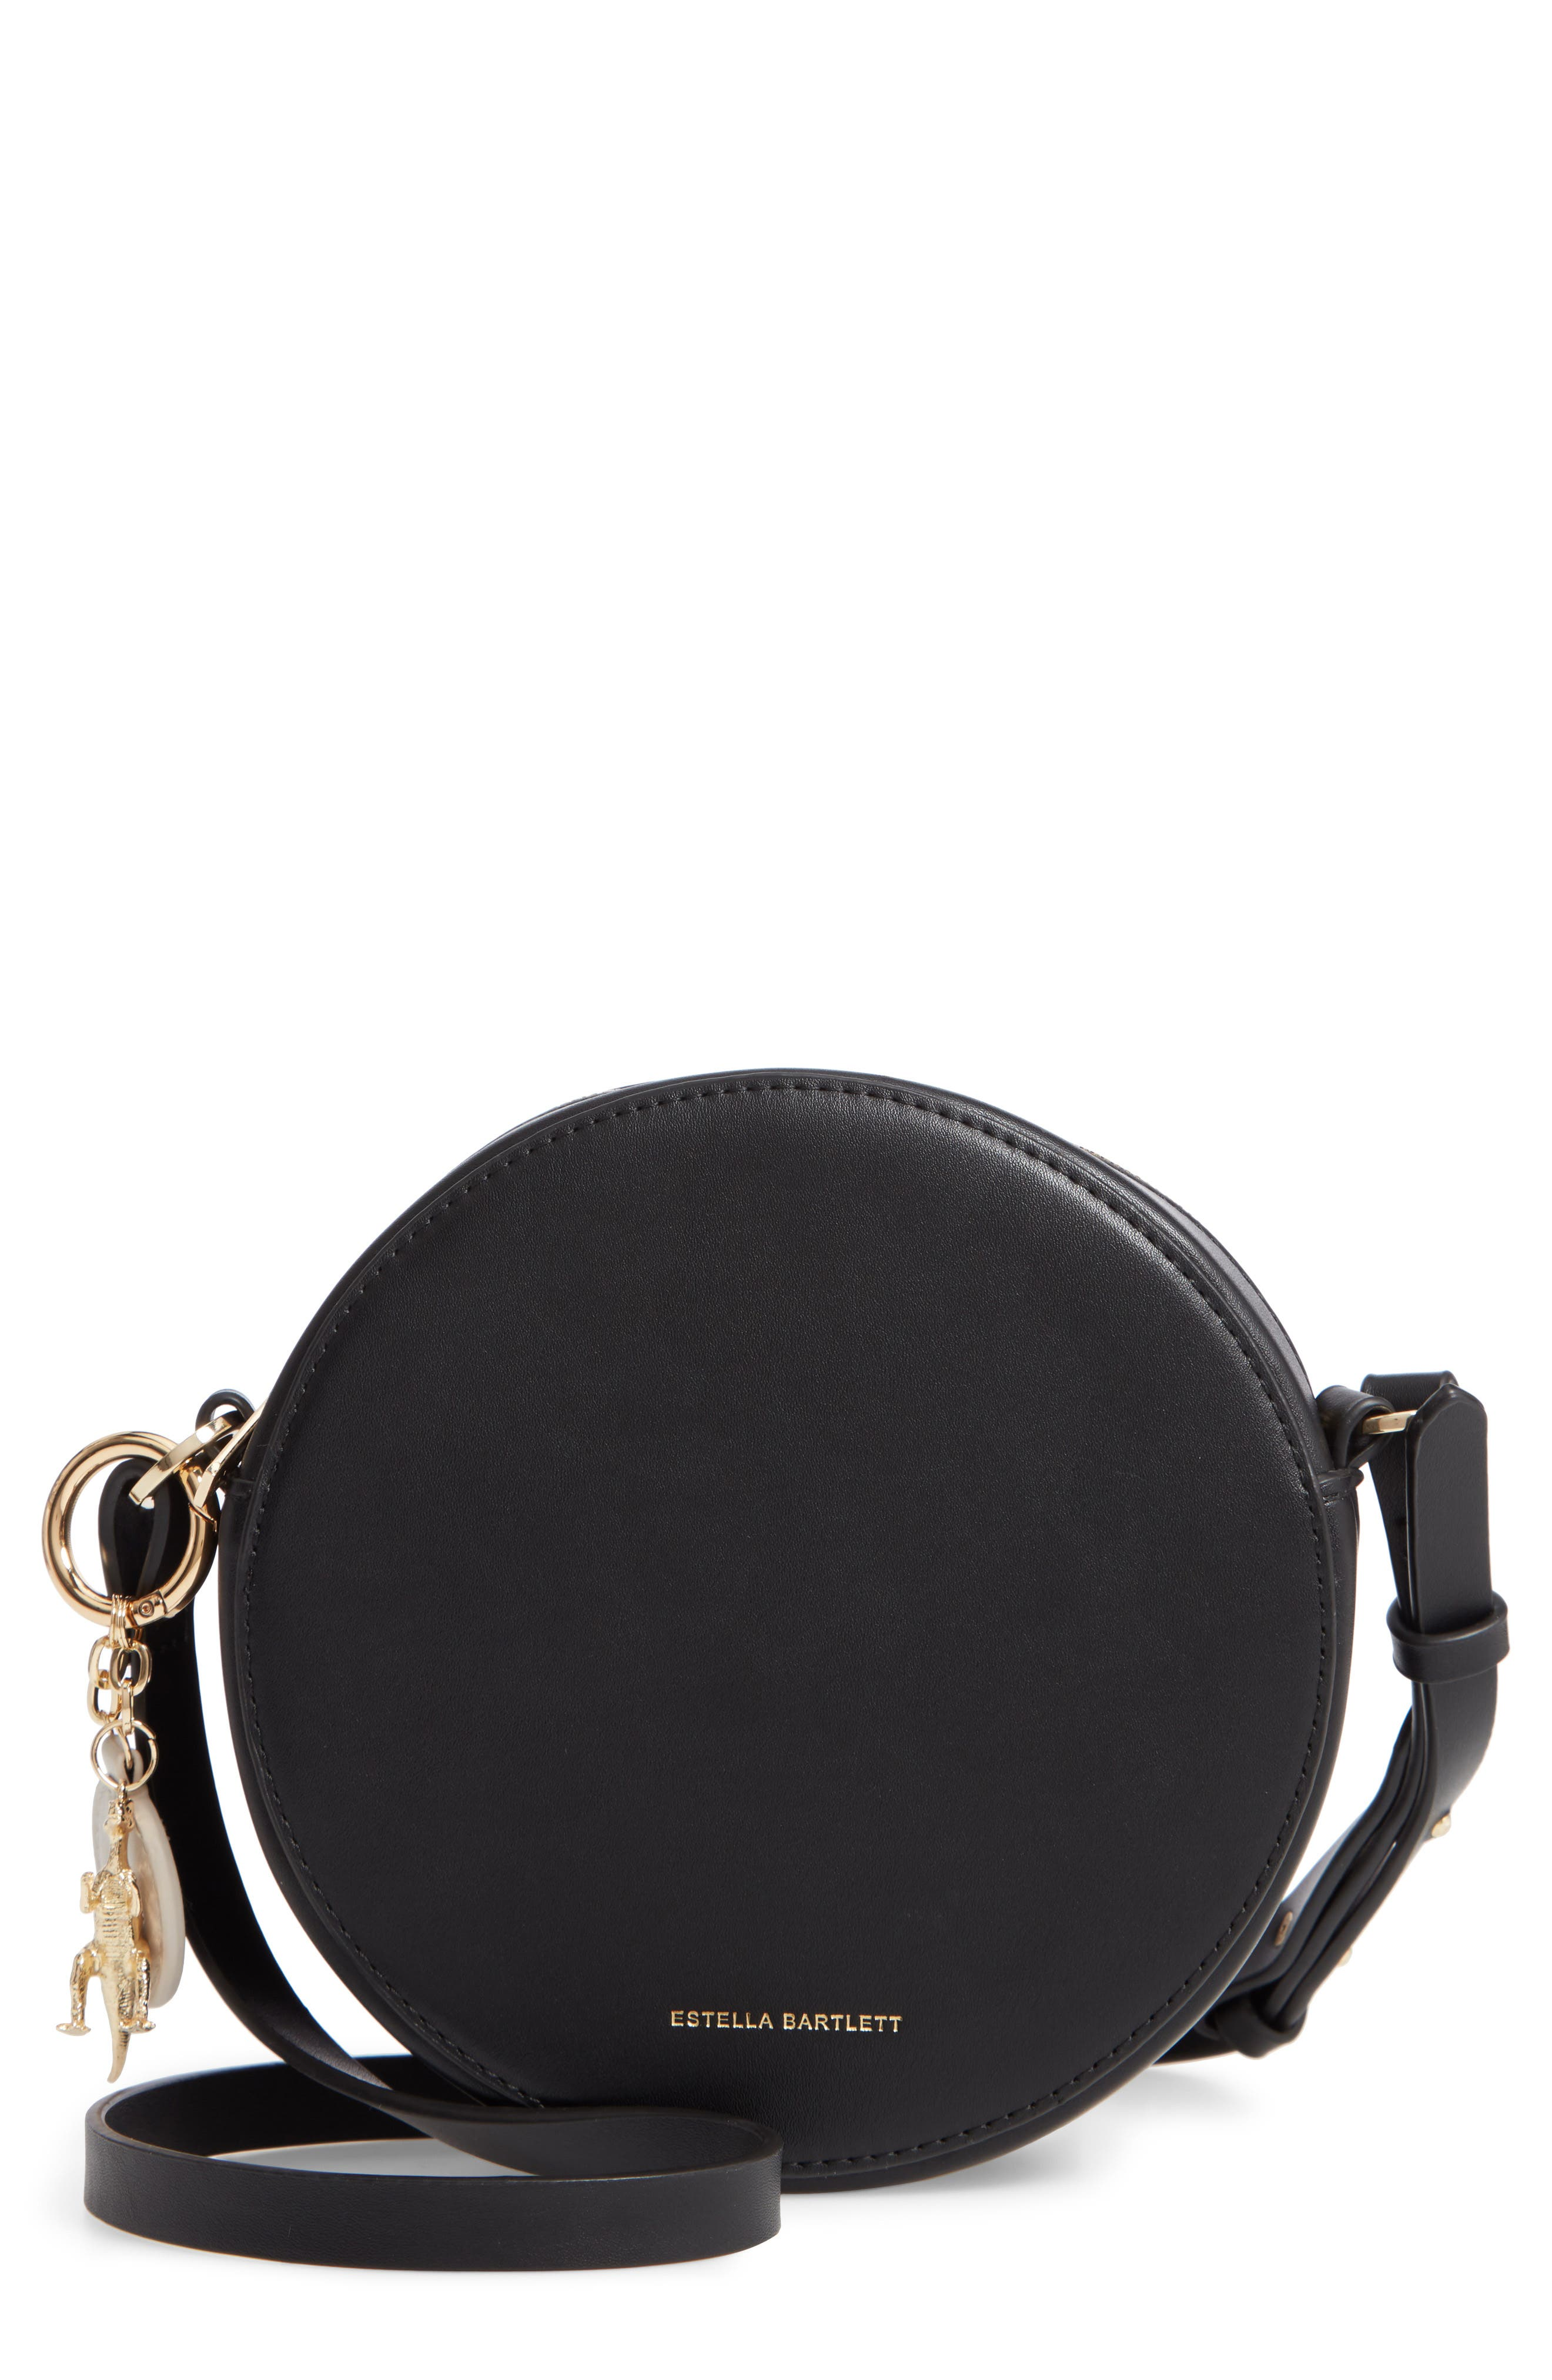 Emerson Faux Leather Round Bag,                         Main,                         color, BLACK/ YELLOW